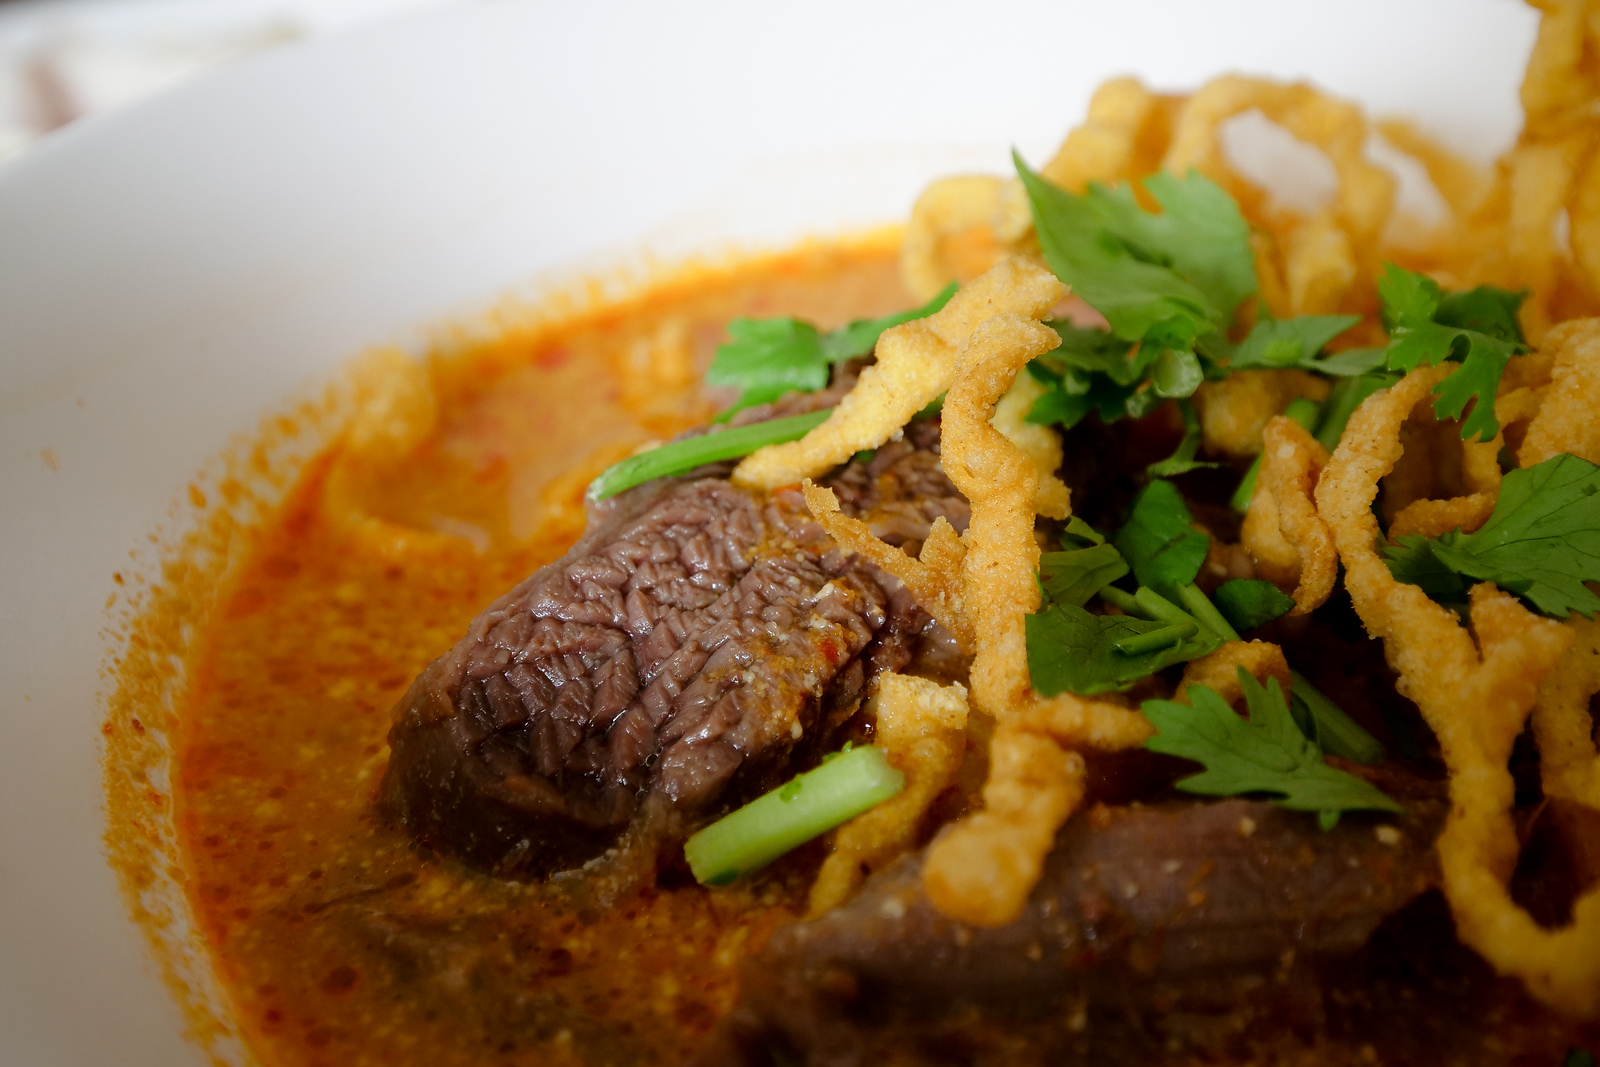 Beef Khao Soi is my favorite way to have this food.